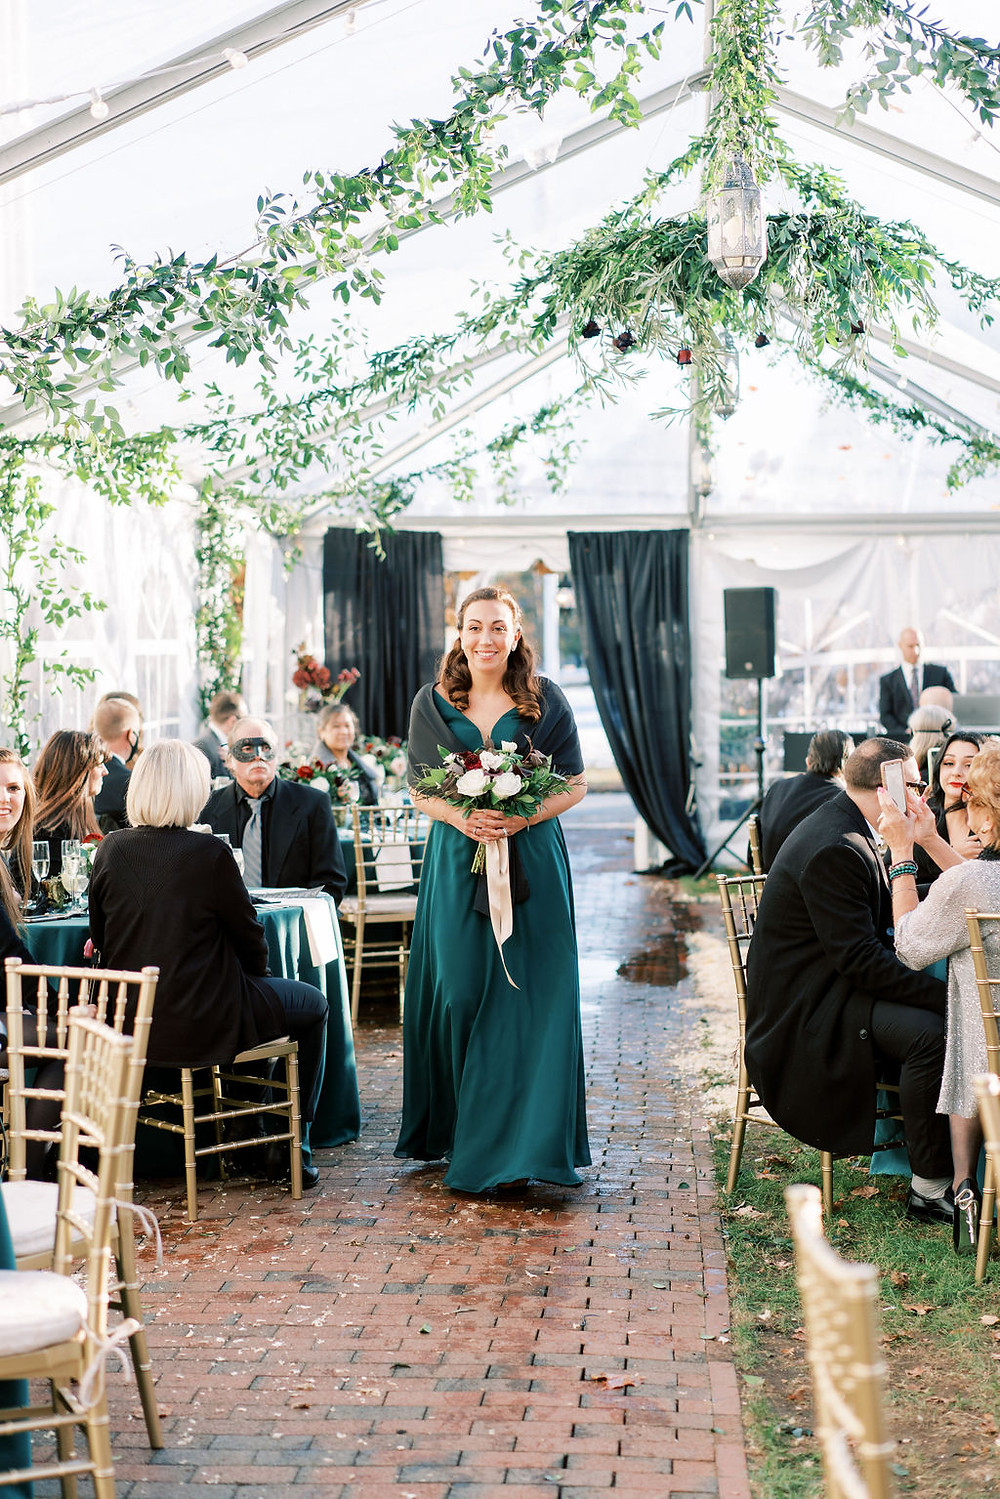 Clear Tent, Micro Wedding, The Commons 1854, Marcela Plosker Photography